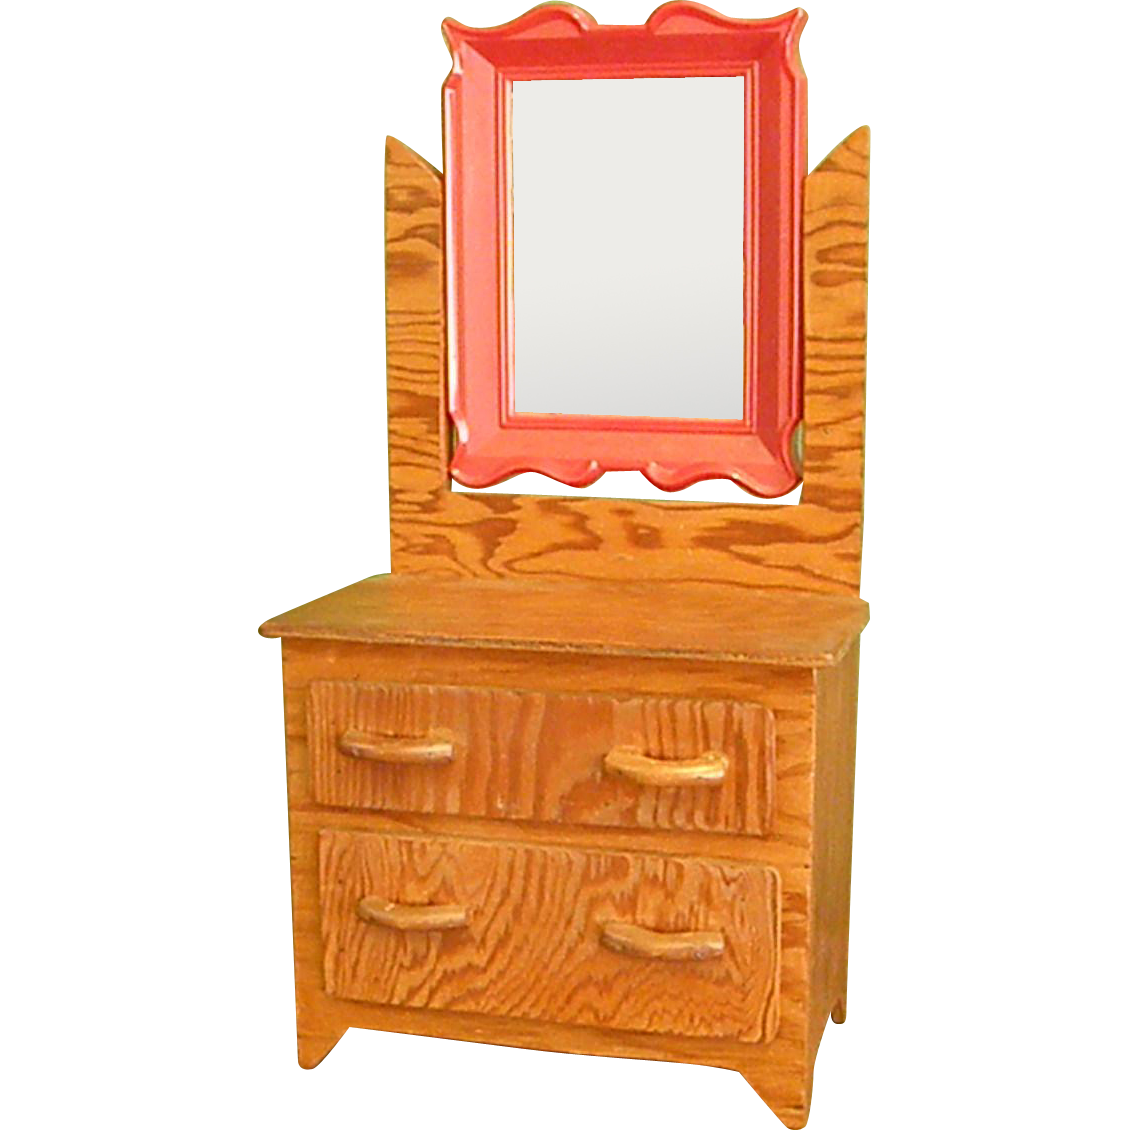 Charming Handmade Folk Art Wood Doll Dresser With Mirror From Bluebonnethillantiques On Ruby Lane